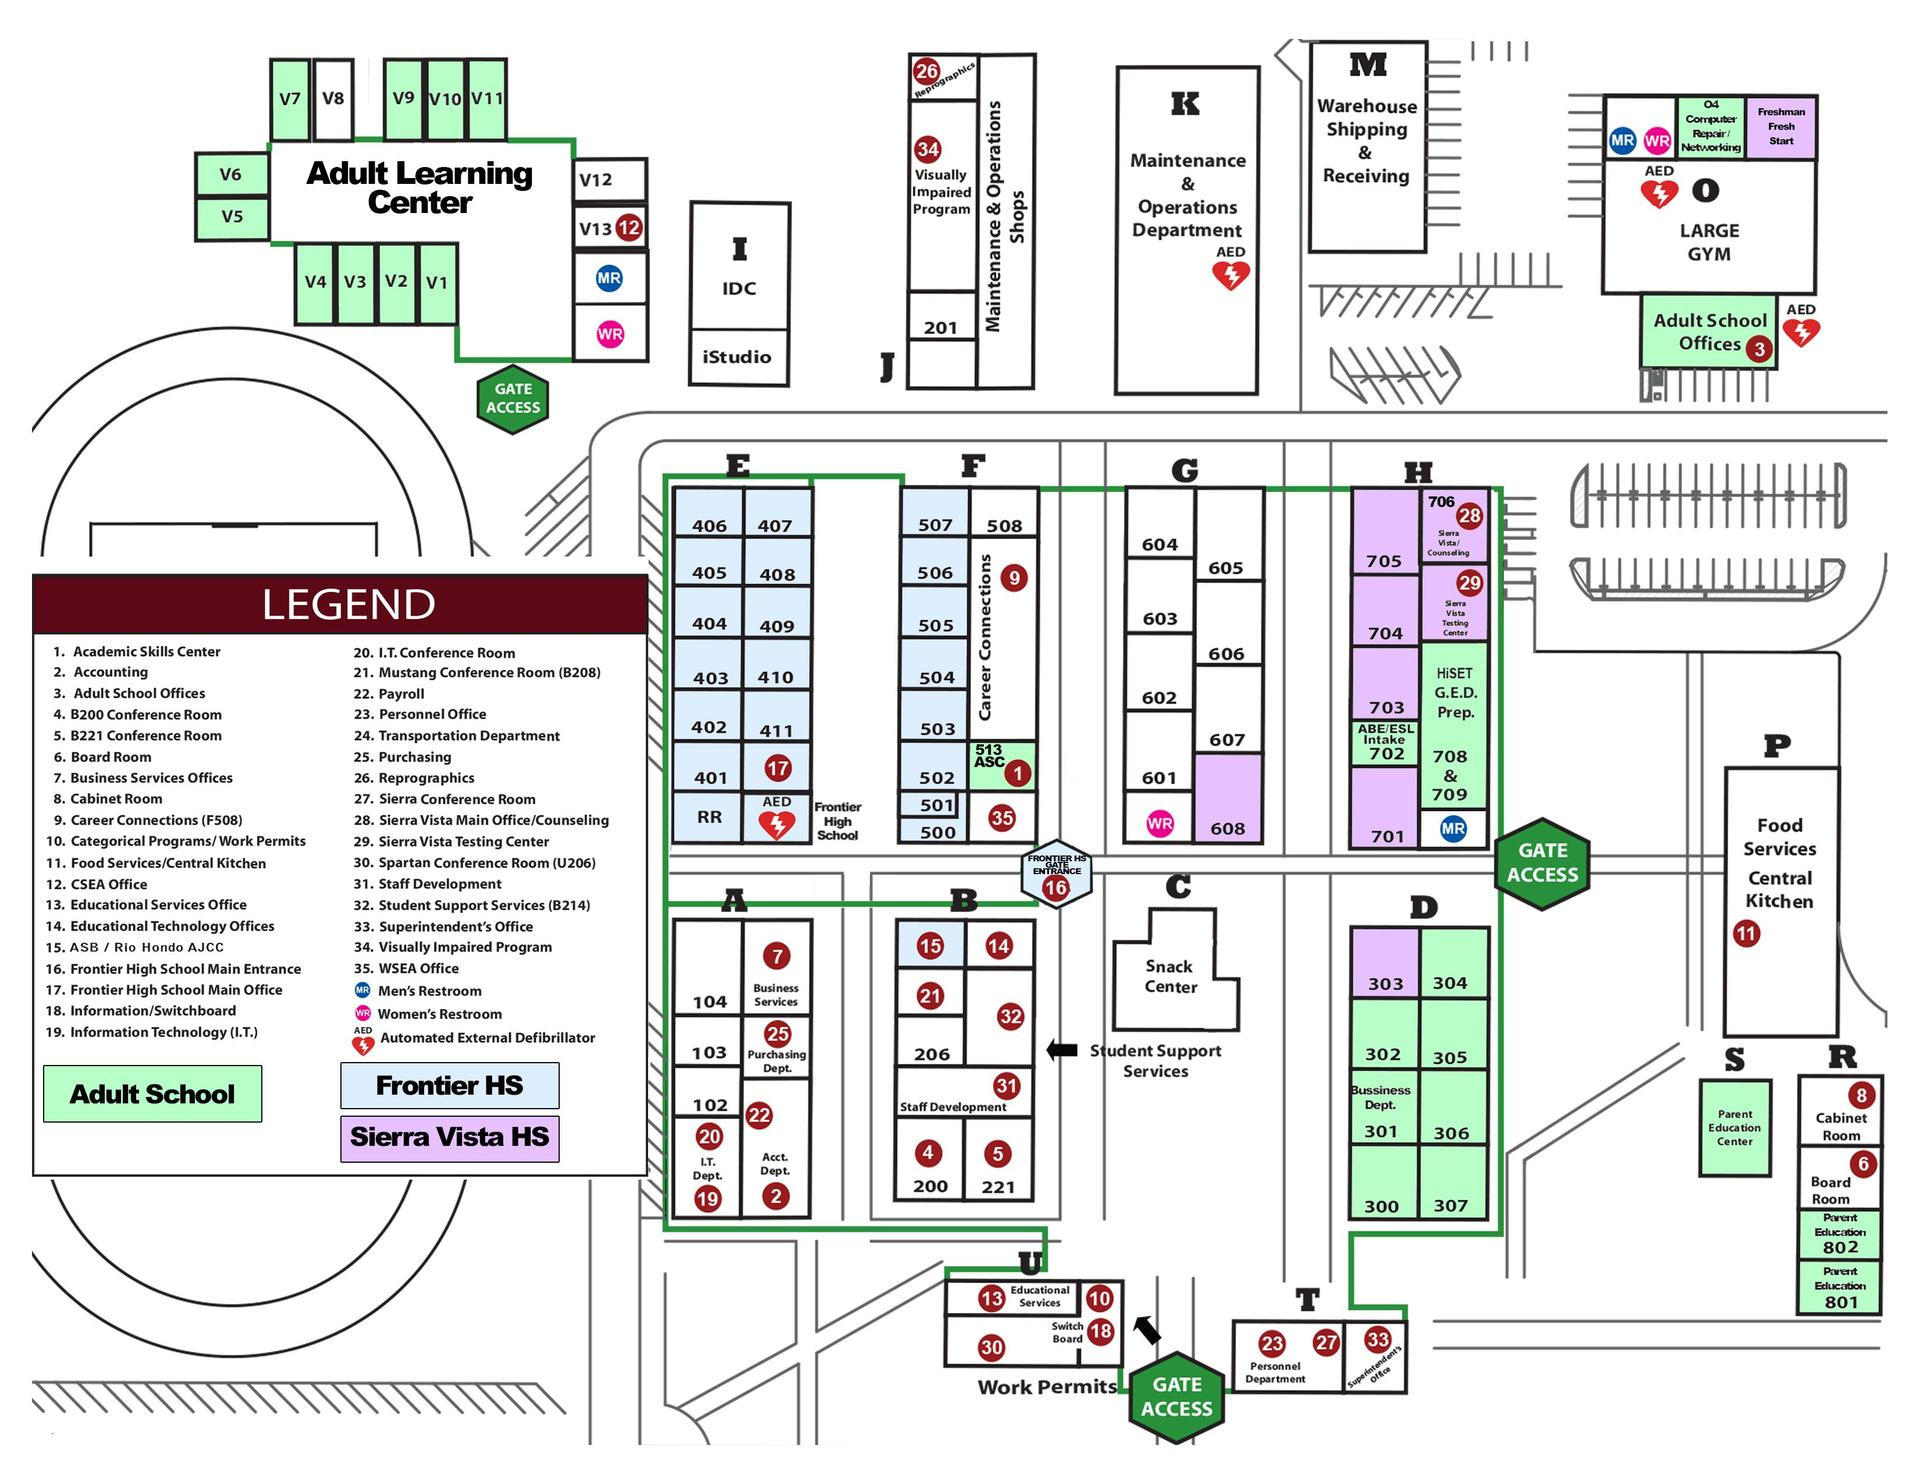 A map of the campus